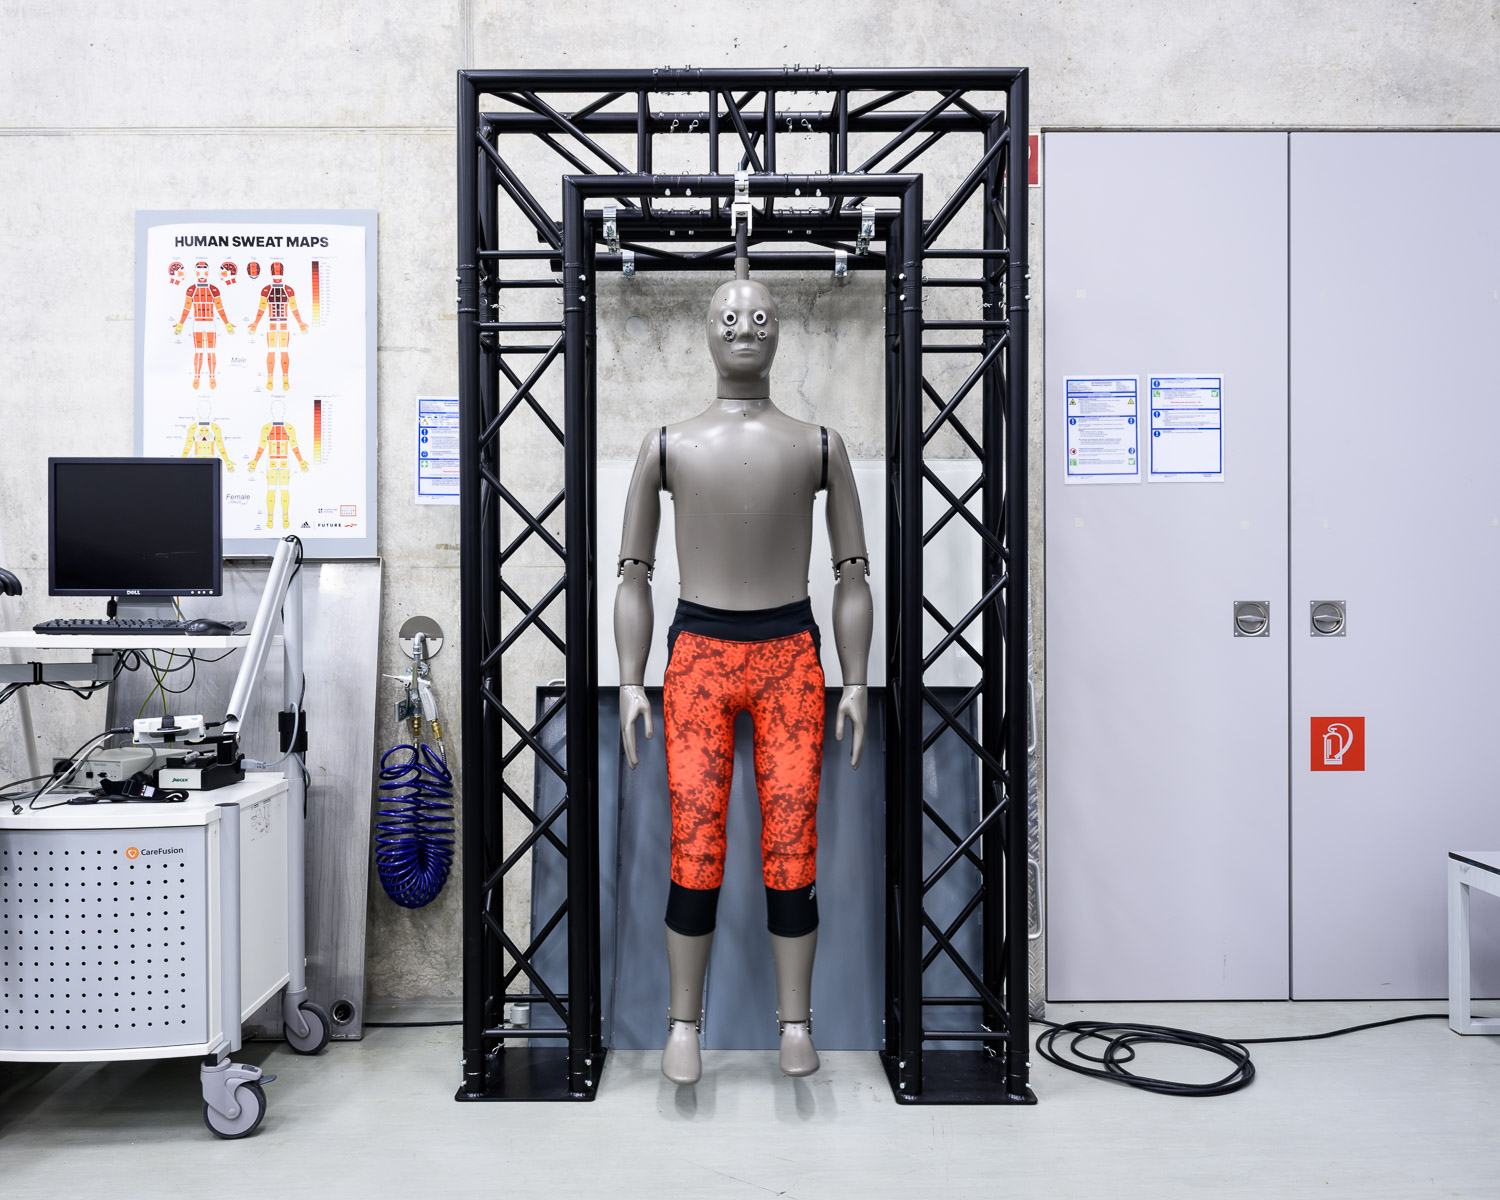 """Newton"" the thermal mannequin. Newton simulates walking movement, gets hot and sweats in order to test fabrics and materials in different conditions at the Future Sports Science Lab at adidas' headquarters in Herzogenaurach."